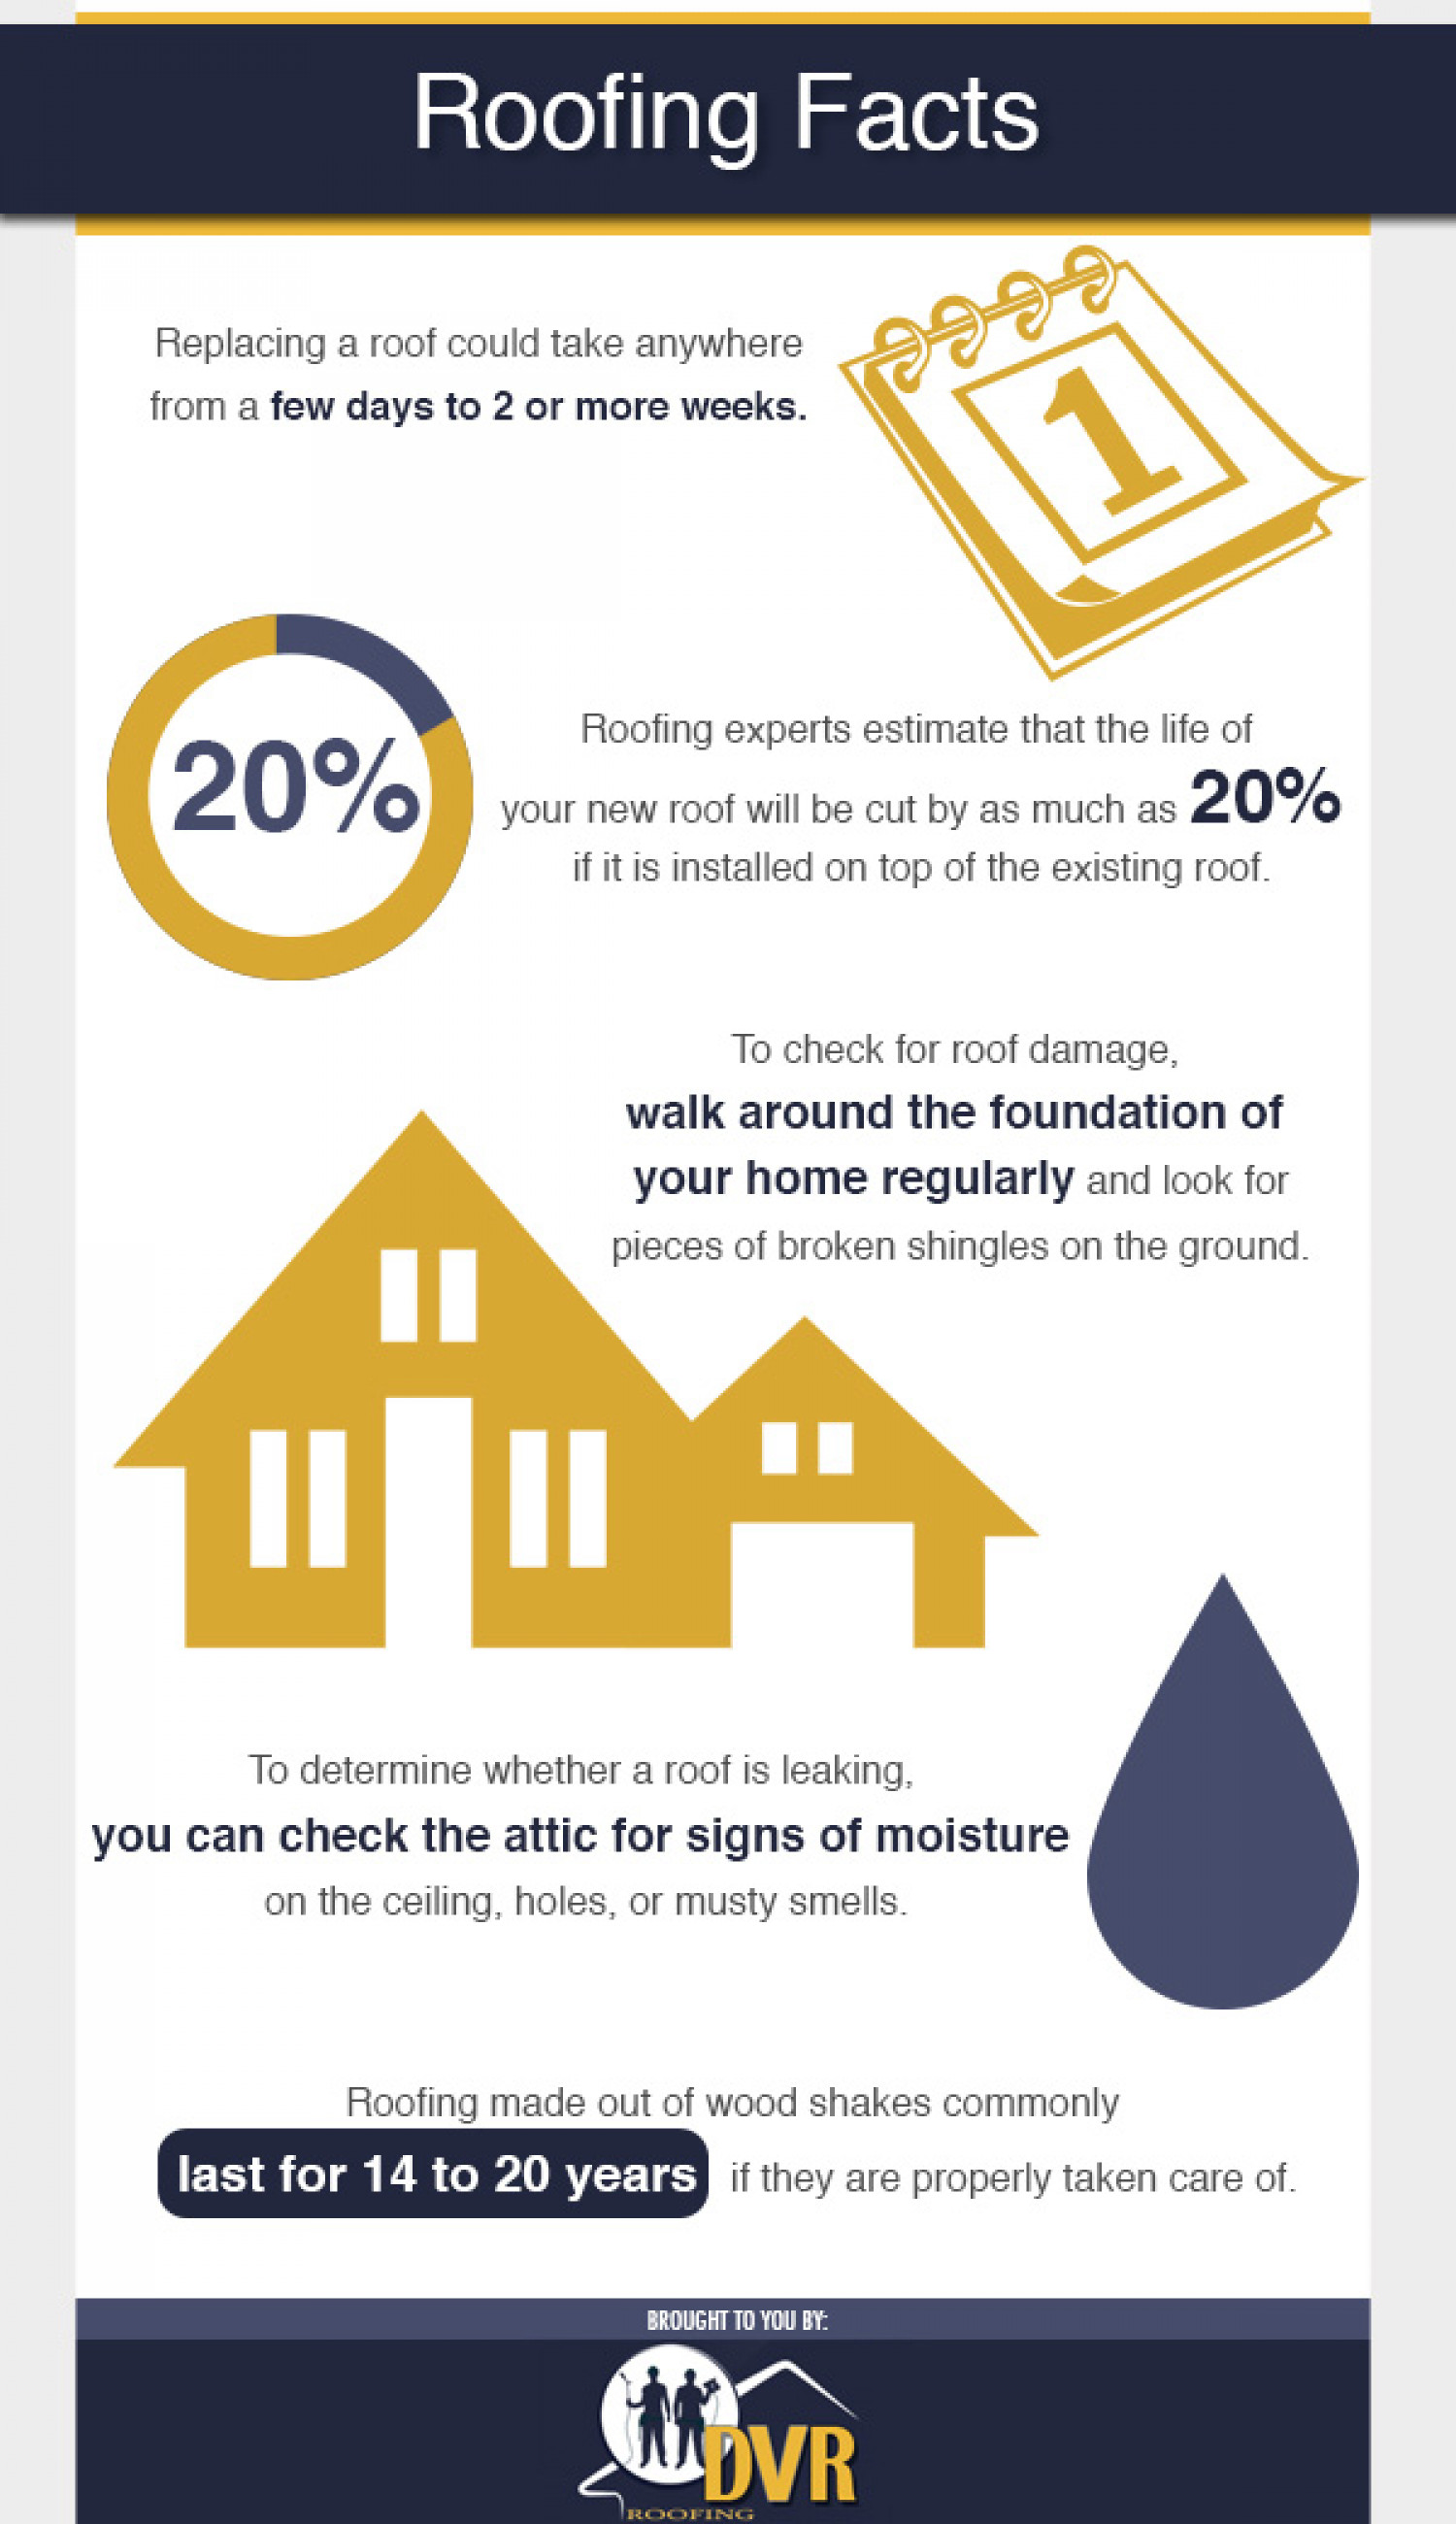 Roofing Facts Infographic